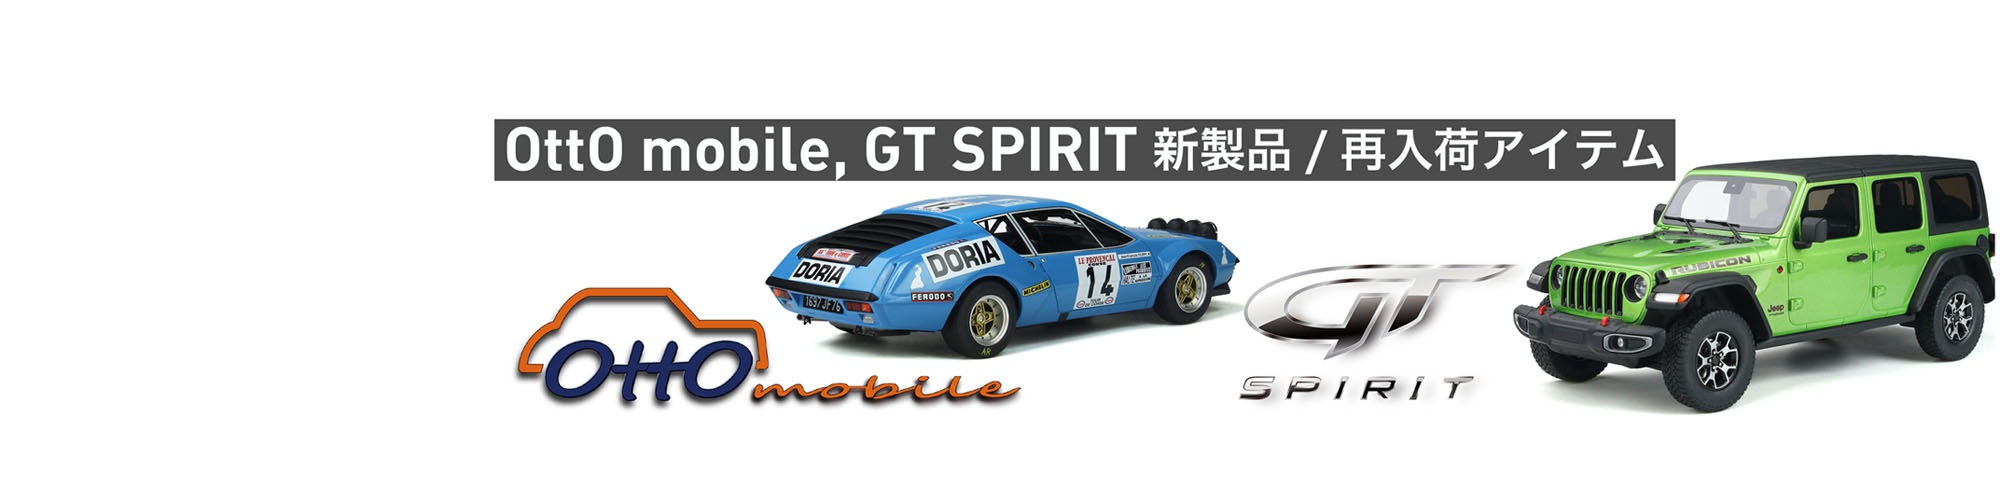 OttO mobile GT SPRIT 新製品 再入荷アイテム